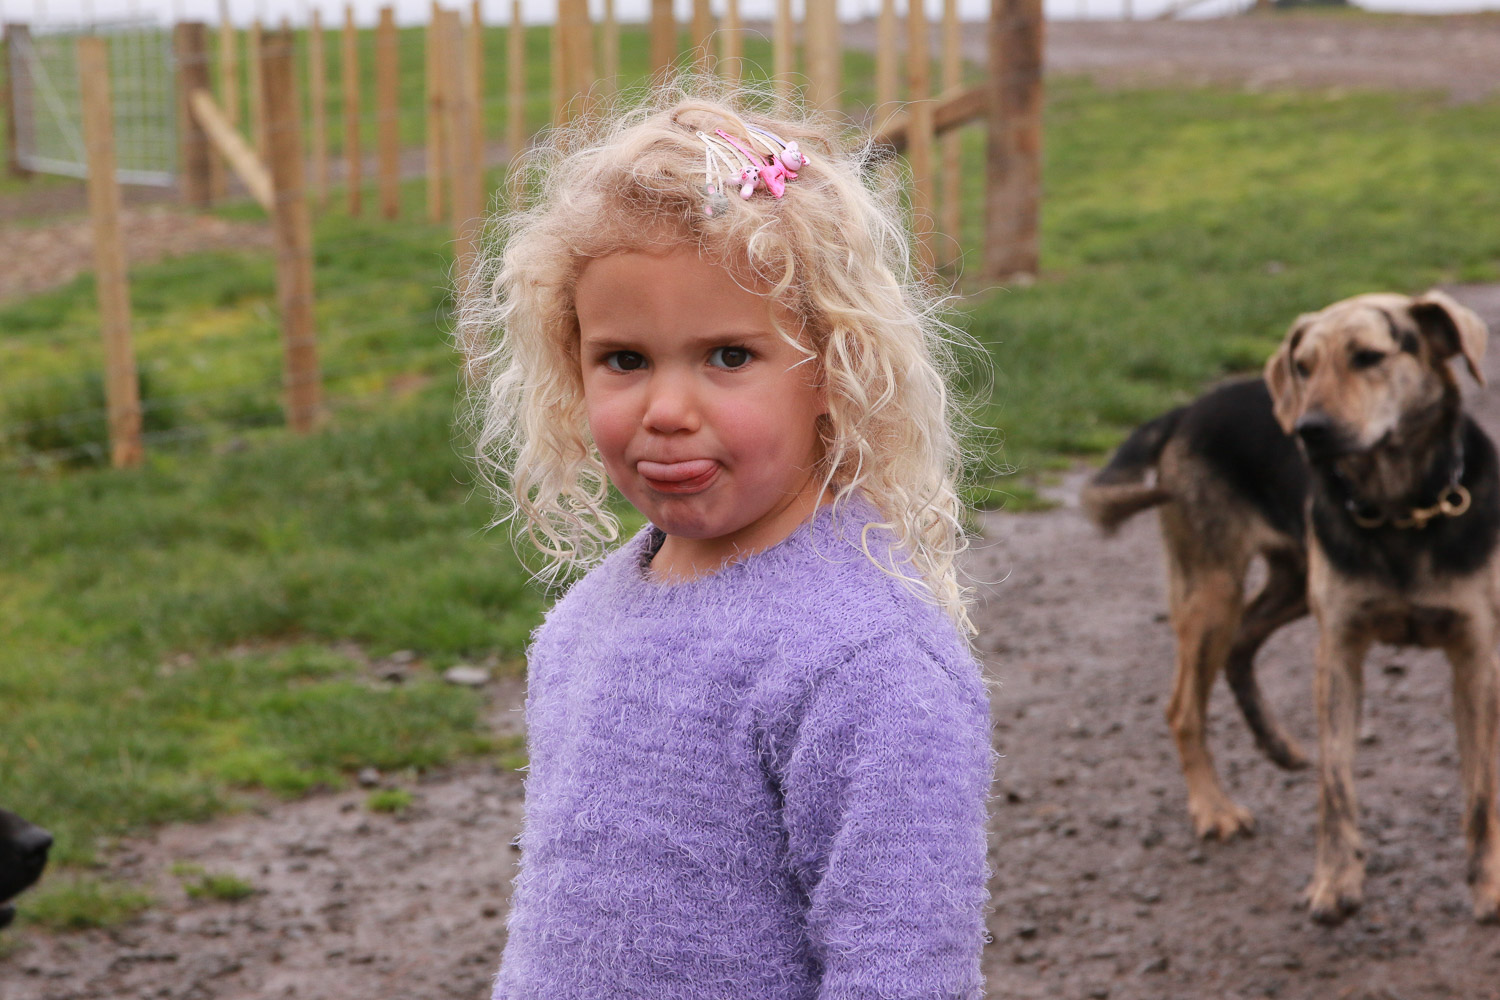 little-girl-wild-blonde-hair-in-purple-top-dog-in-background-on-farm-clips-in-her-hair